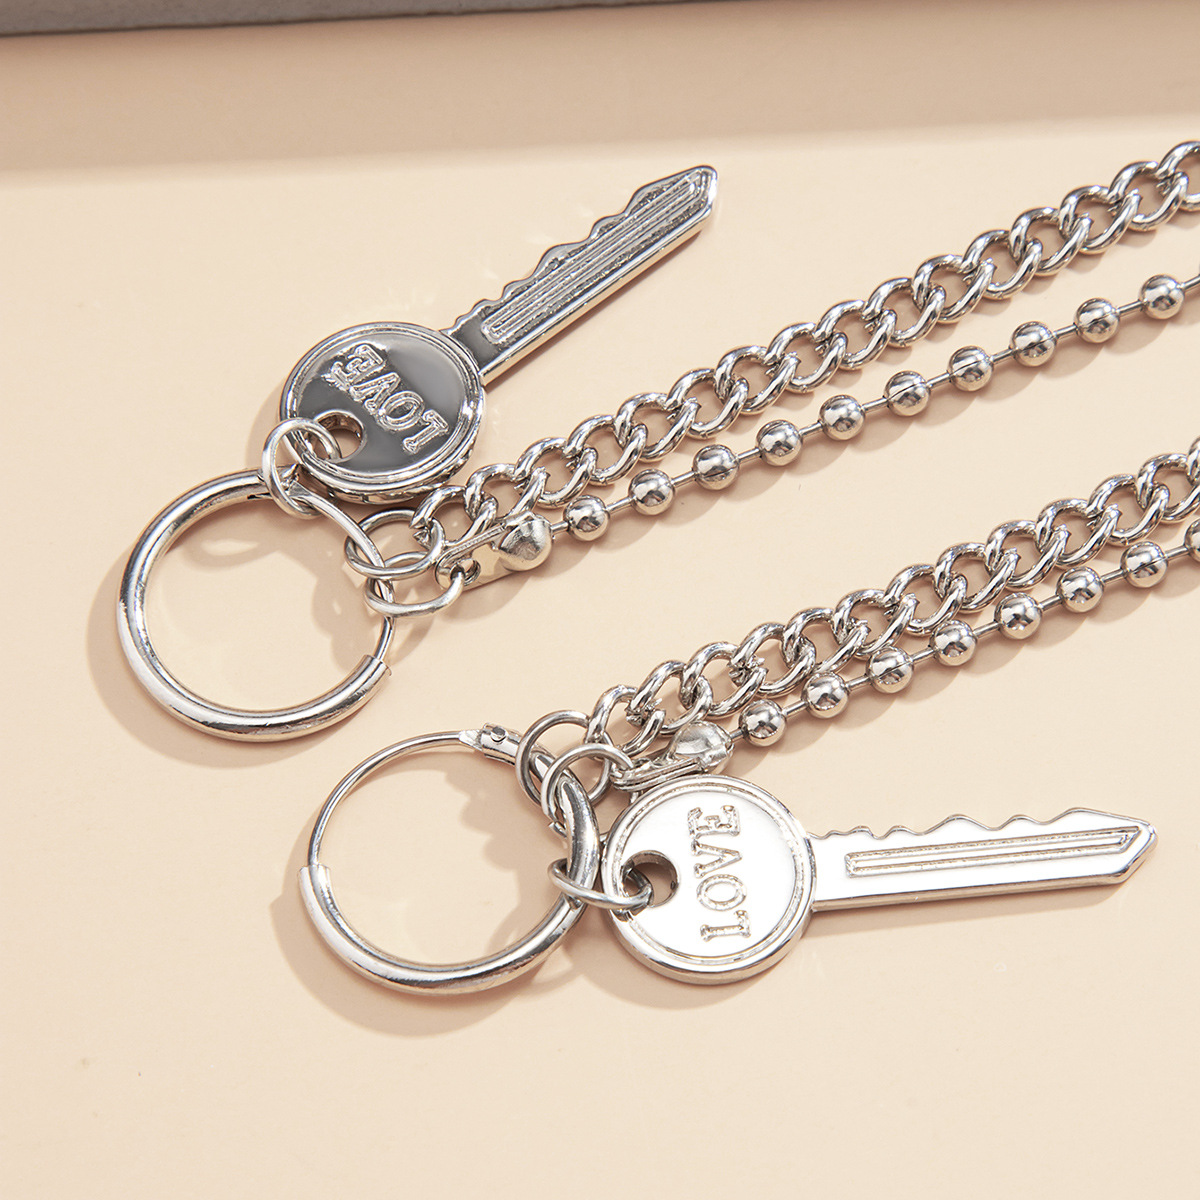 retro simple key pendant earrings NHXR268525